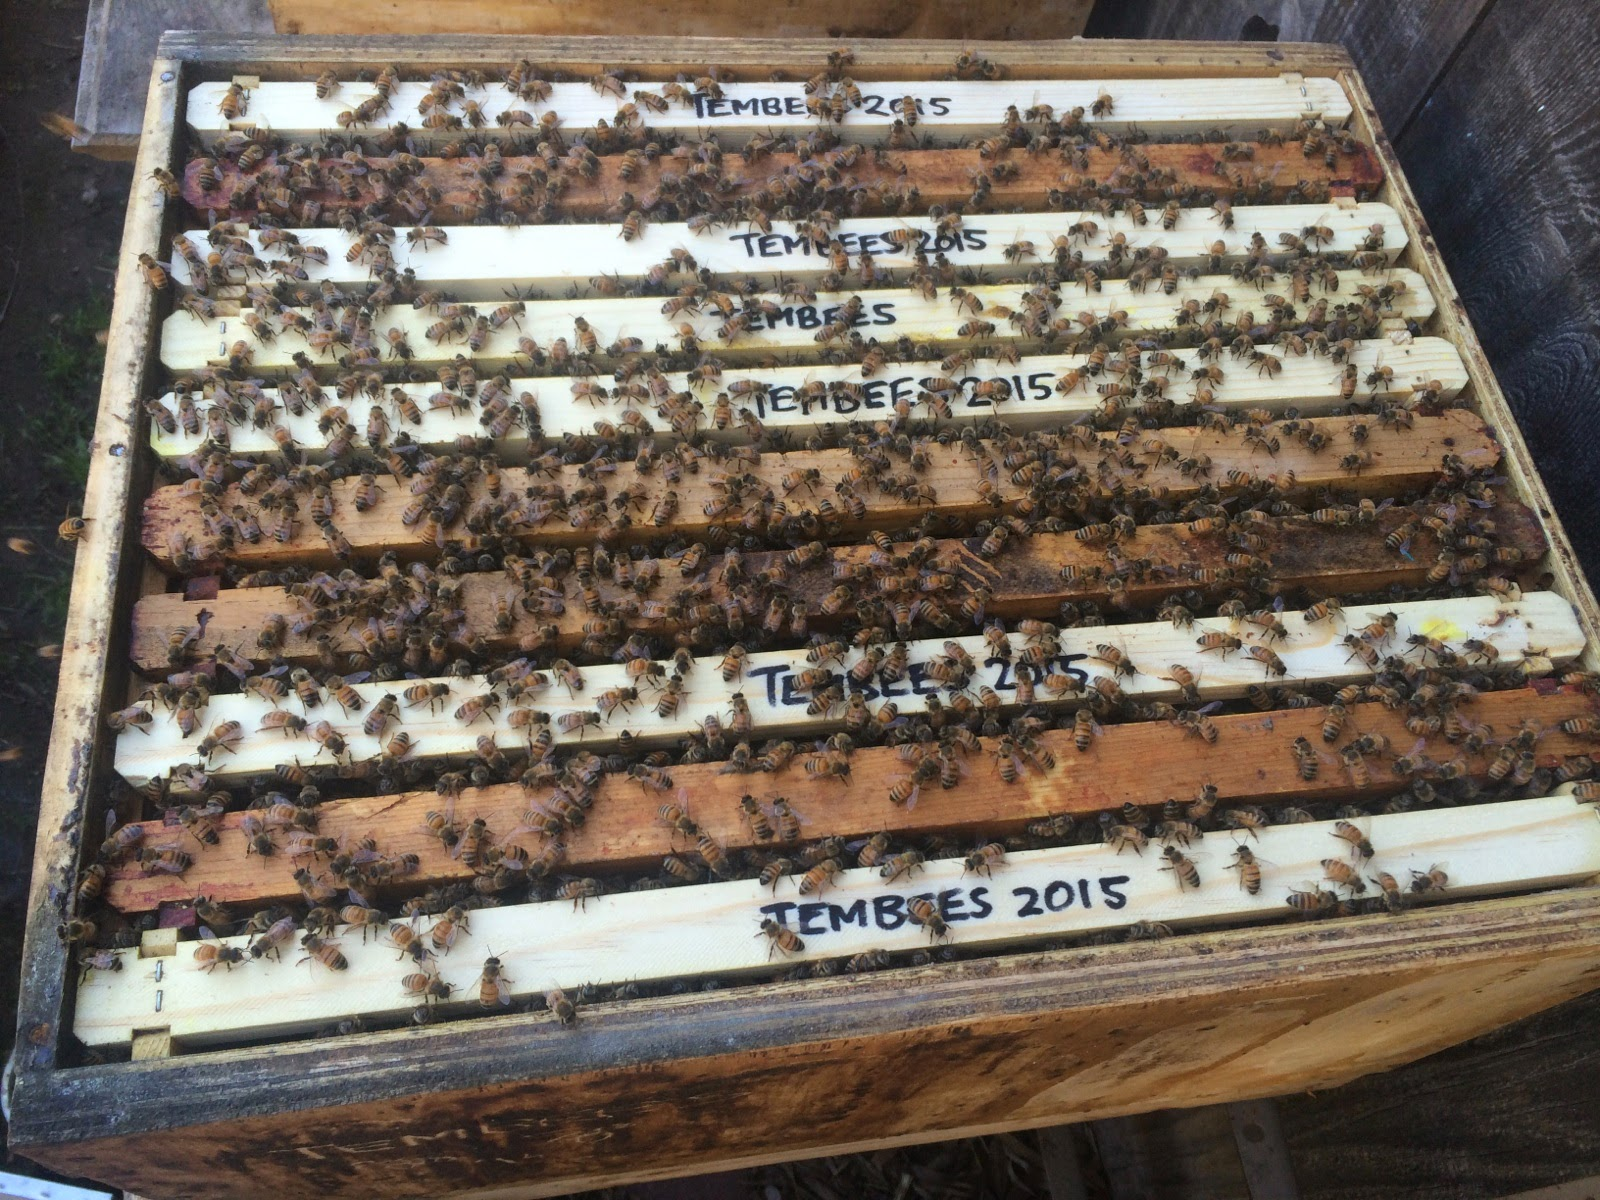 Transitioning to Foundationless frames, as the bees intended ...